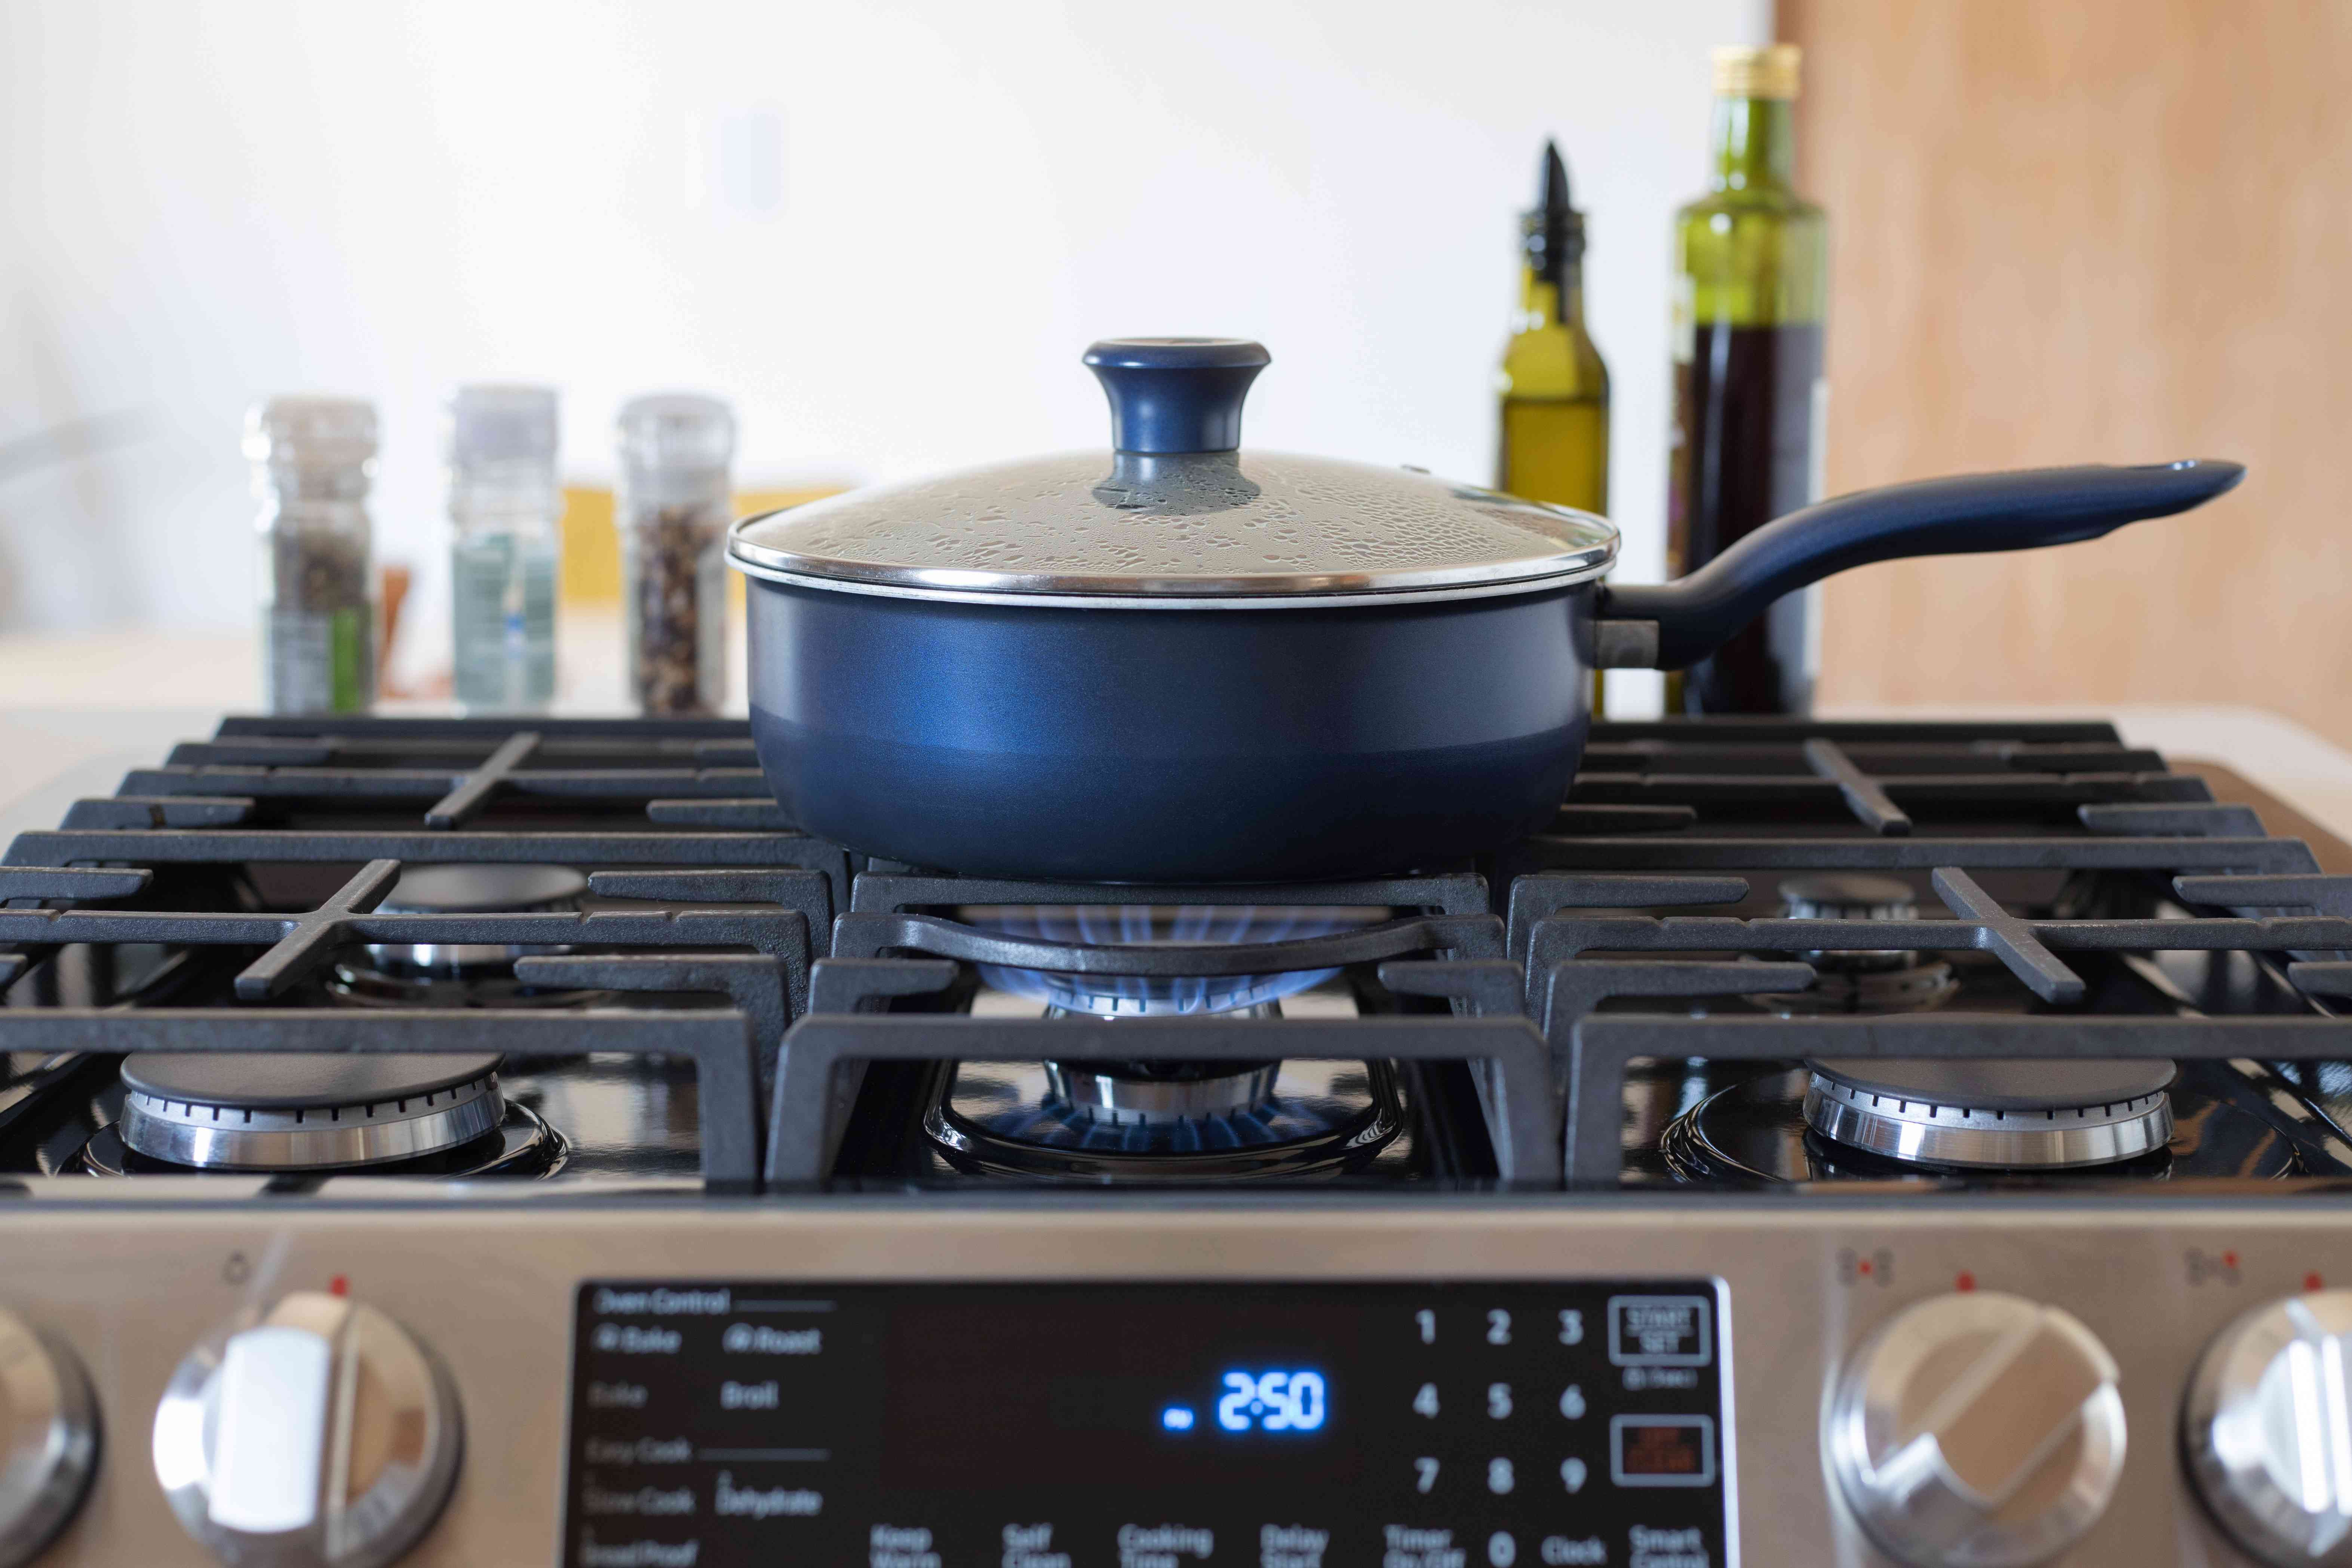 Cook pan being used with lid on while gas stove is running